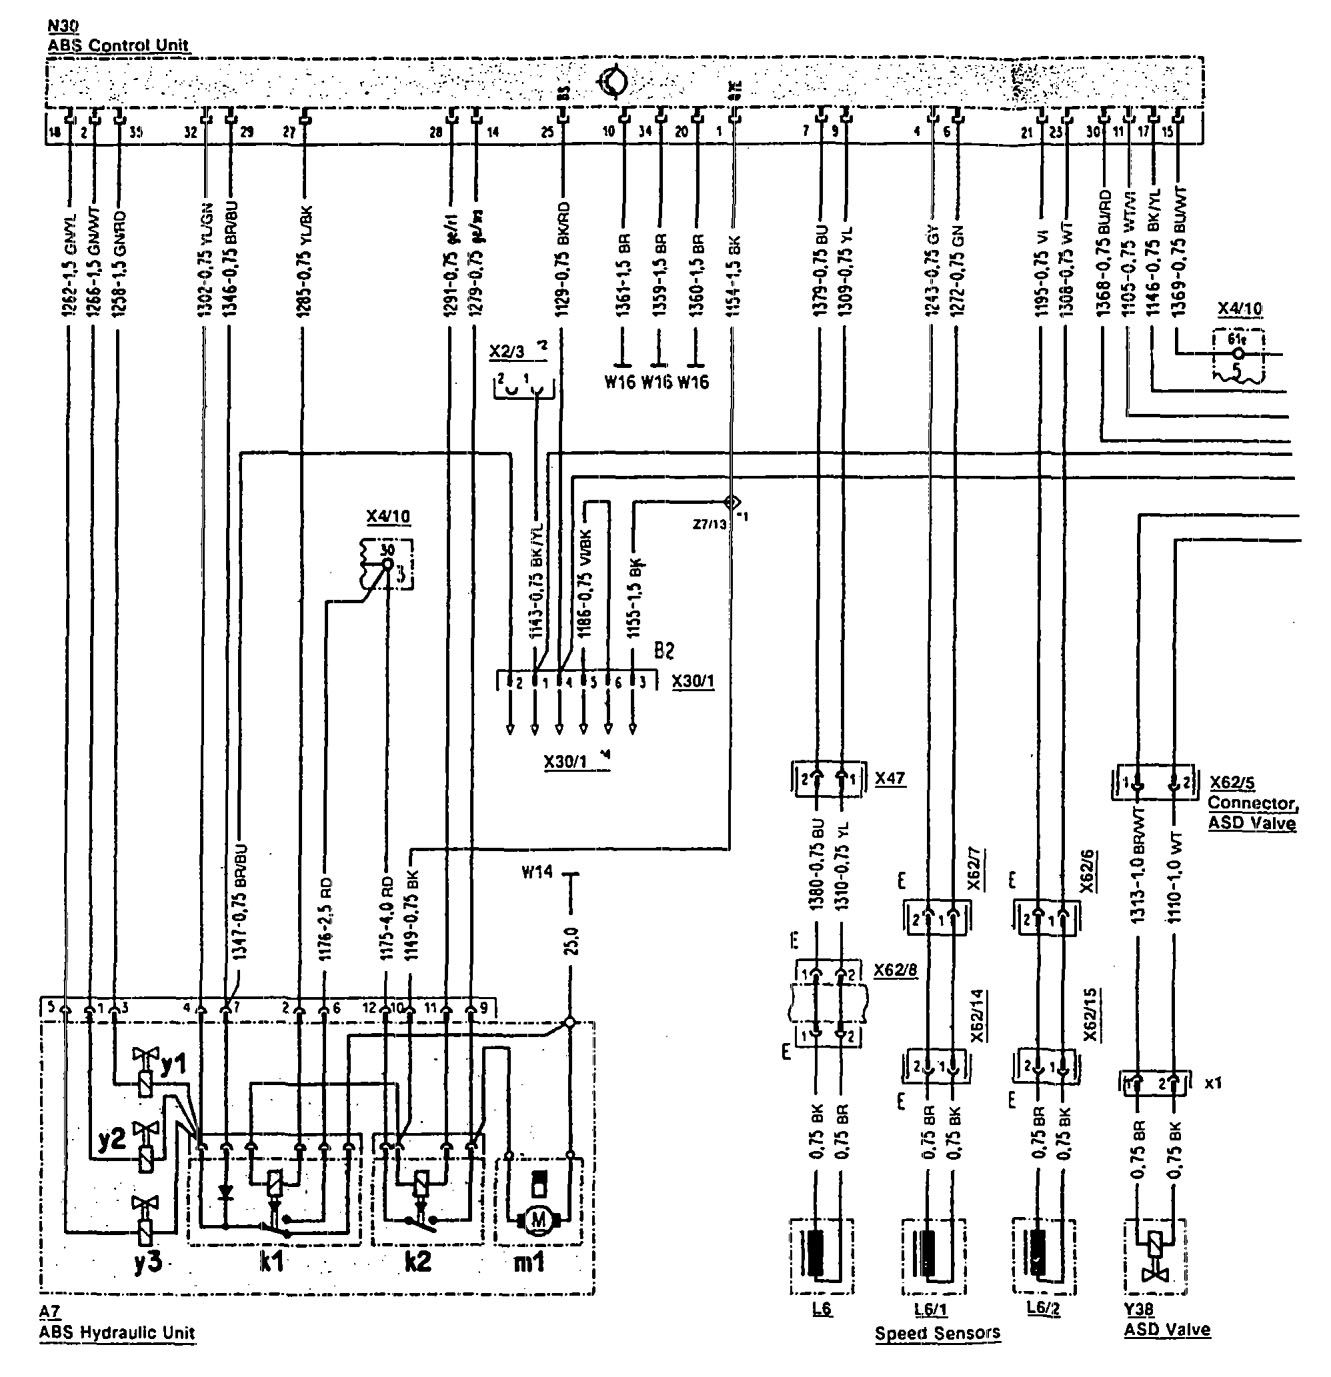 1975 240d wiring diagram circuit wiring and diagram hub u2022 rh ethermag co mercedes 300d wiring diagram mercedes benz w123 wiring diagram